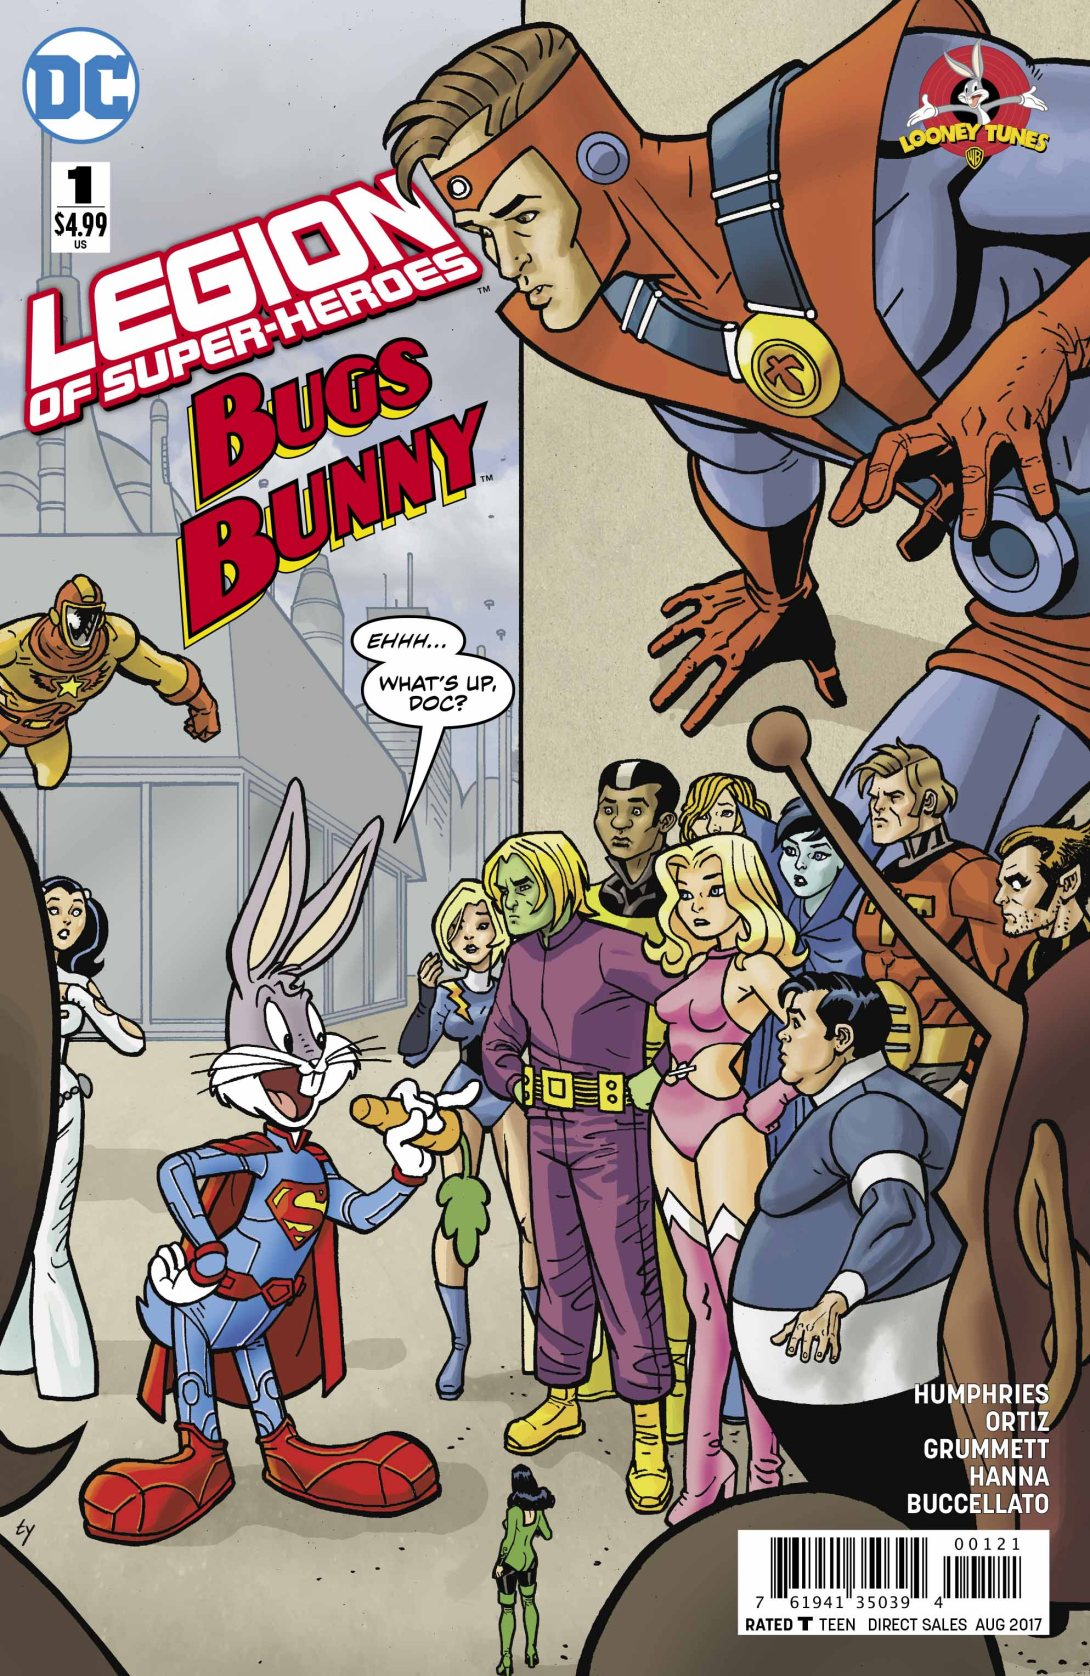 Legion of Super-heroes Bugs Bunny - DC Comics News